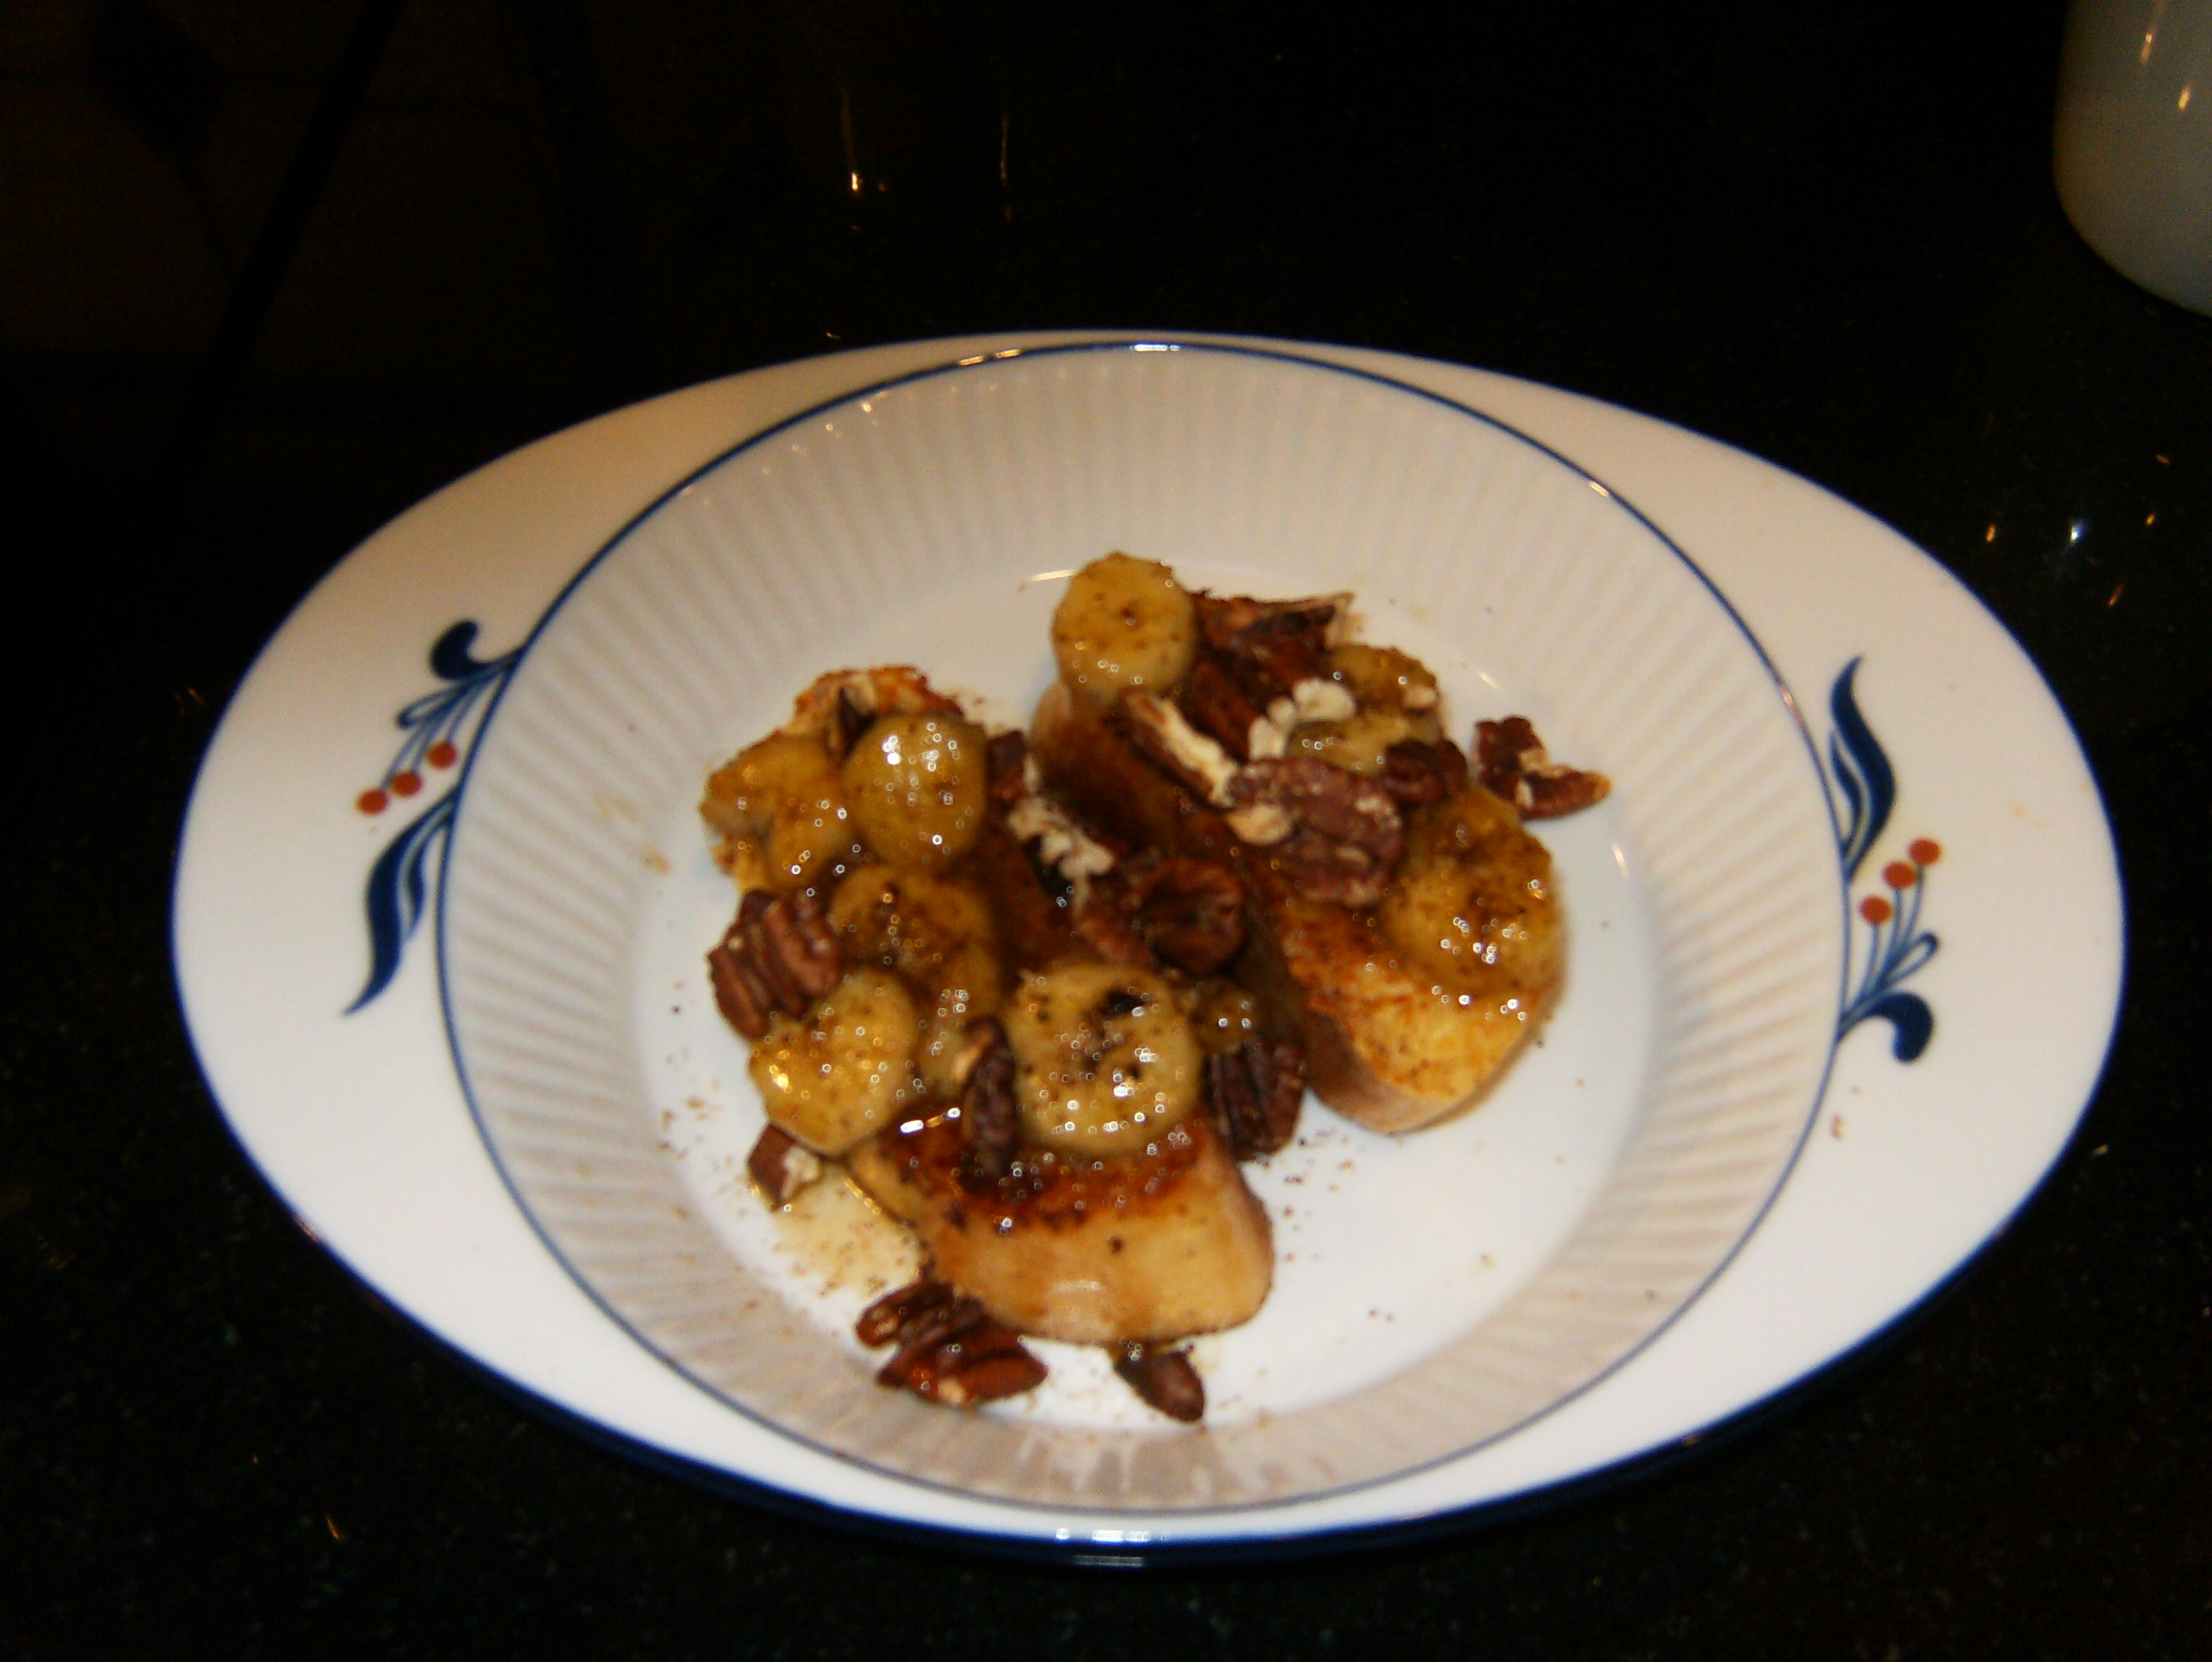 Pain Perdu with Bananas and Pecans